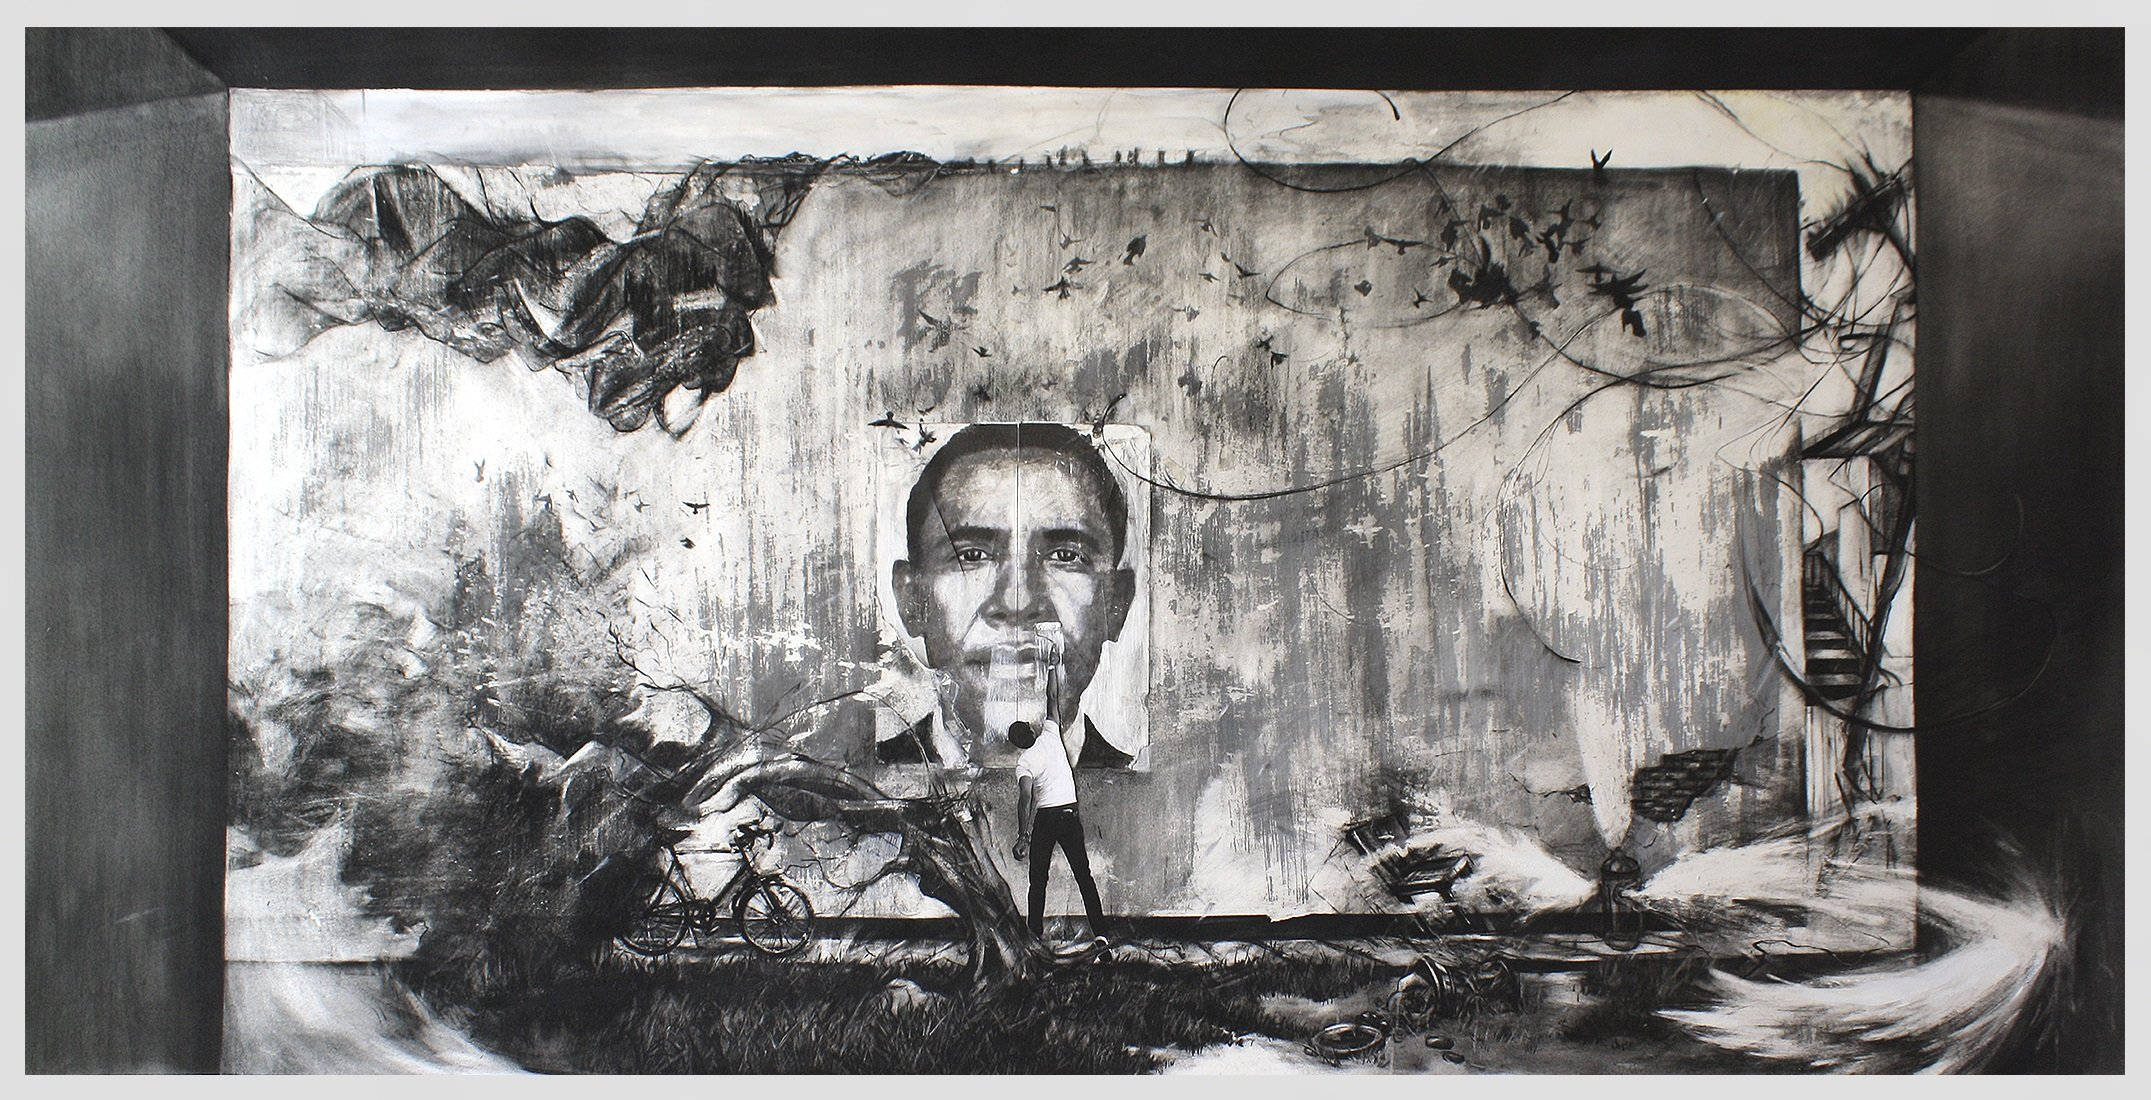 "McKinley Wallace III, Ambition, (2012), 42"" x 65"", Charcoal, Oil and Gesso on Paper. Image courtesy of the artist."